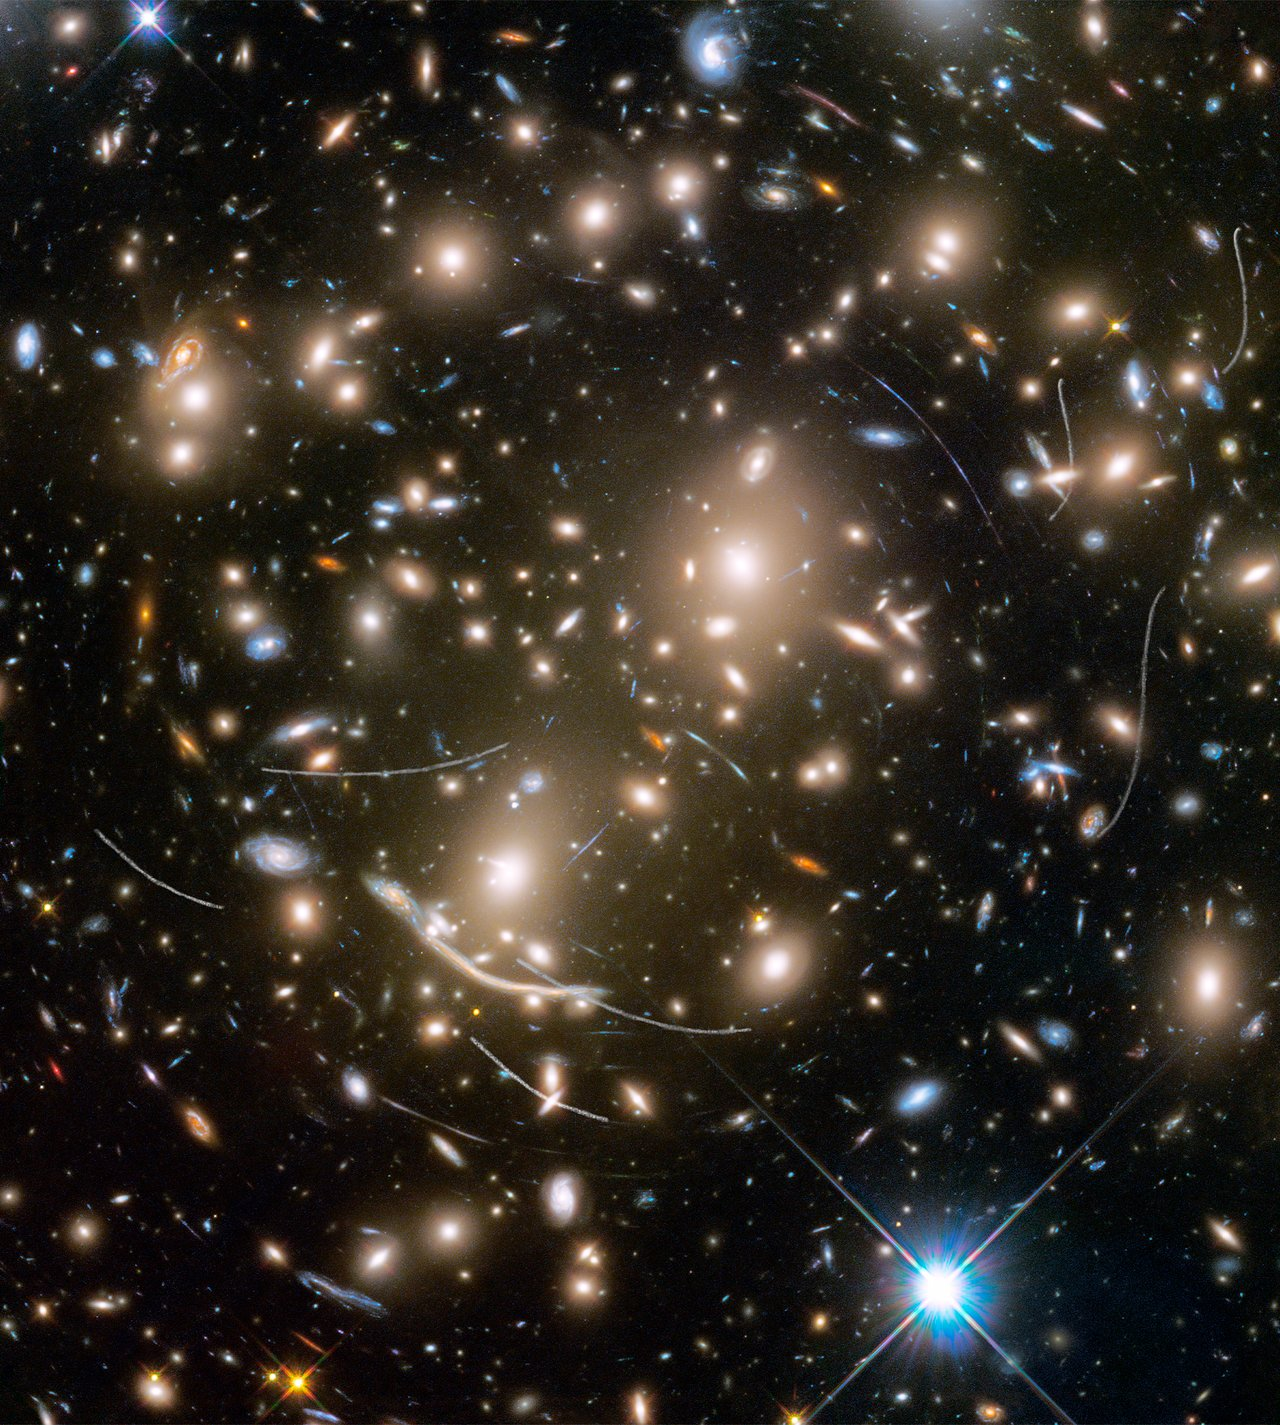 Asteroids in Hubble Frontier Field Abell 370